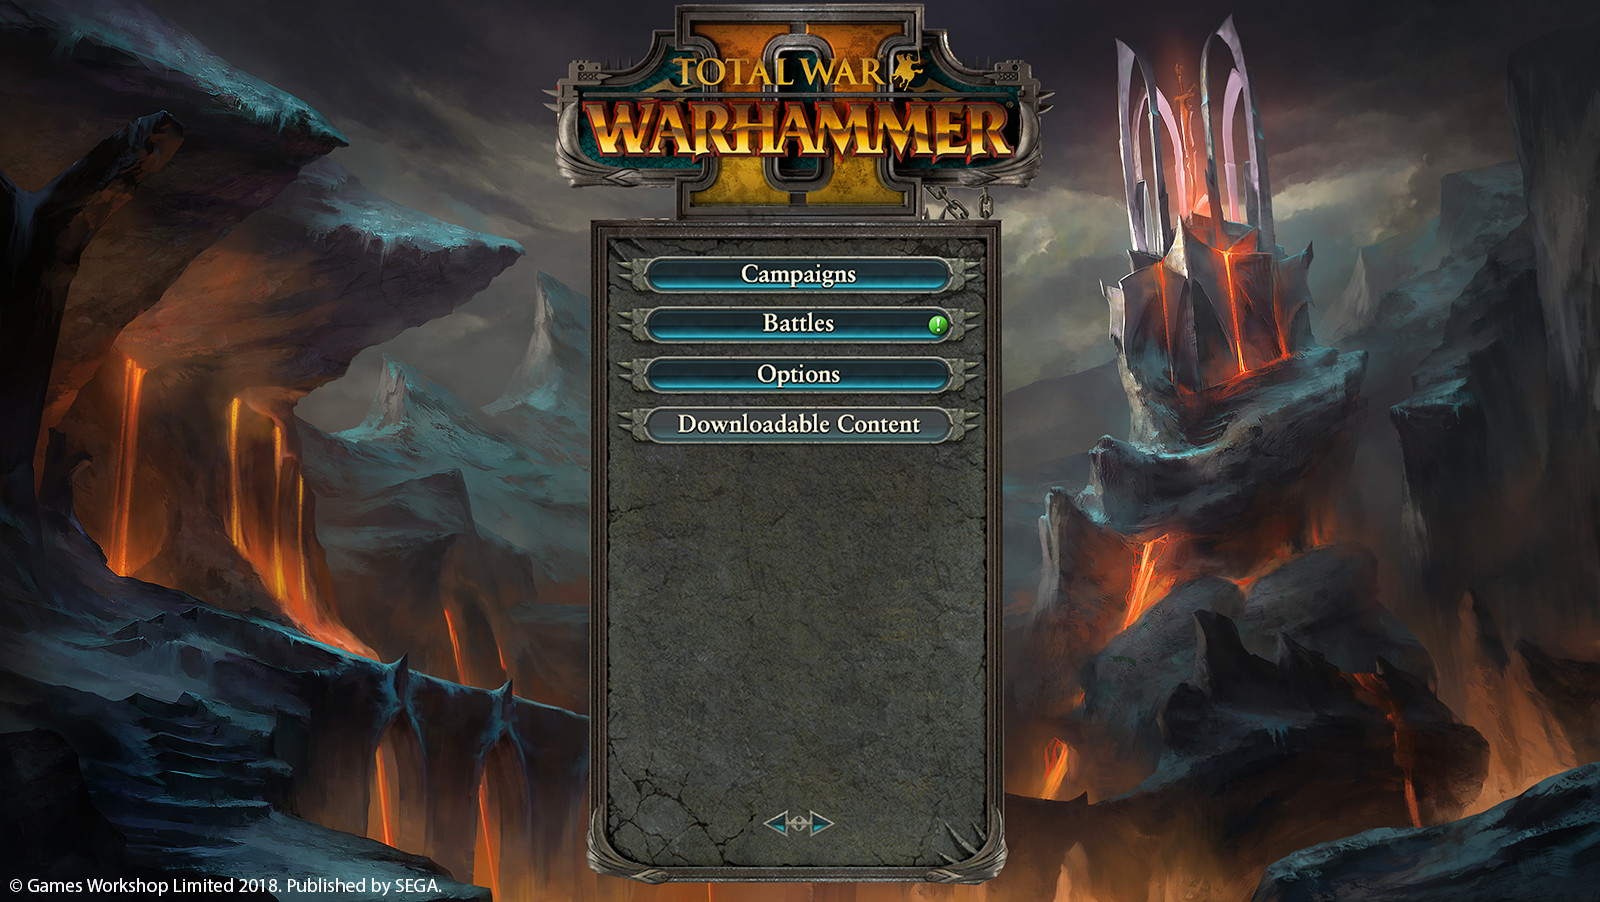 Main Menu with UI